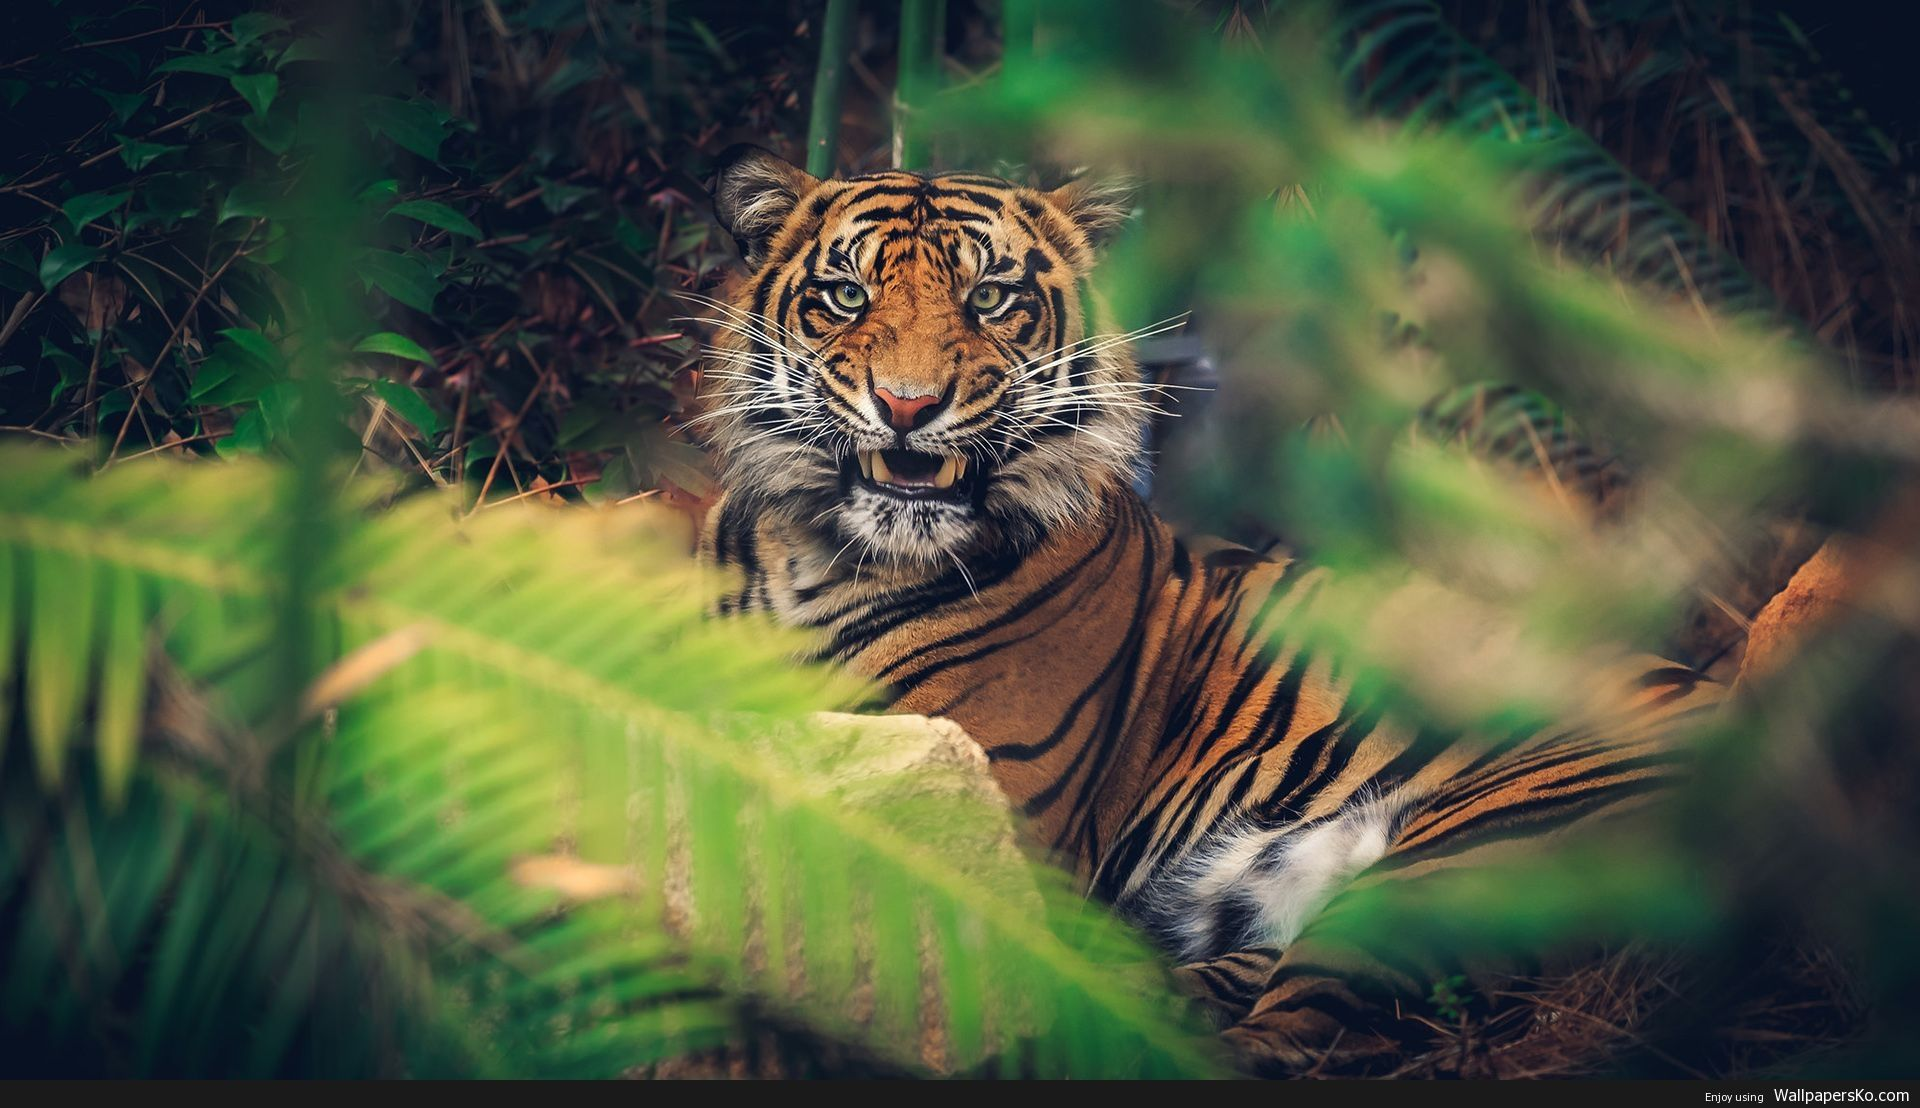 4k Animal Wallpaper Http Wallpapersko Com 4k Animal Wallpaper Html Hd Wallpapers Download Wild Animal Wallpaper Animal Wallpaper Pet Tiger